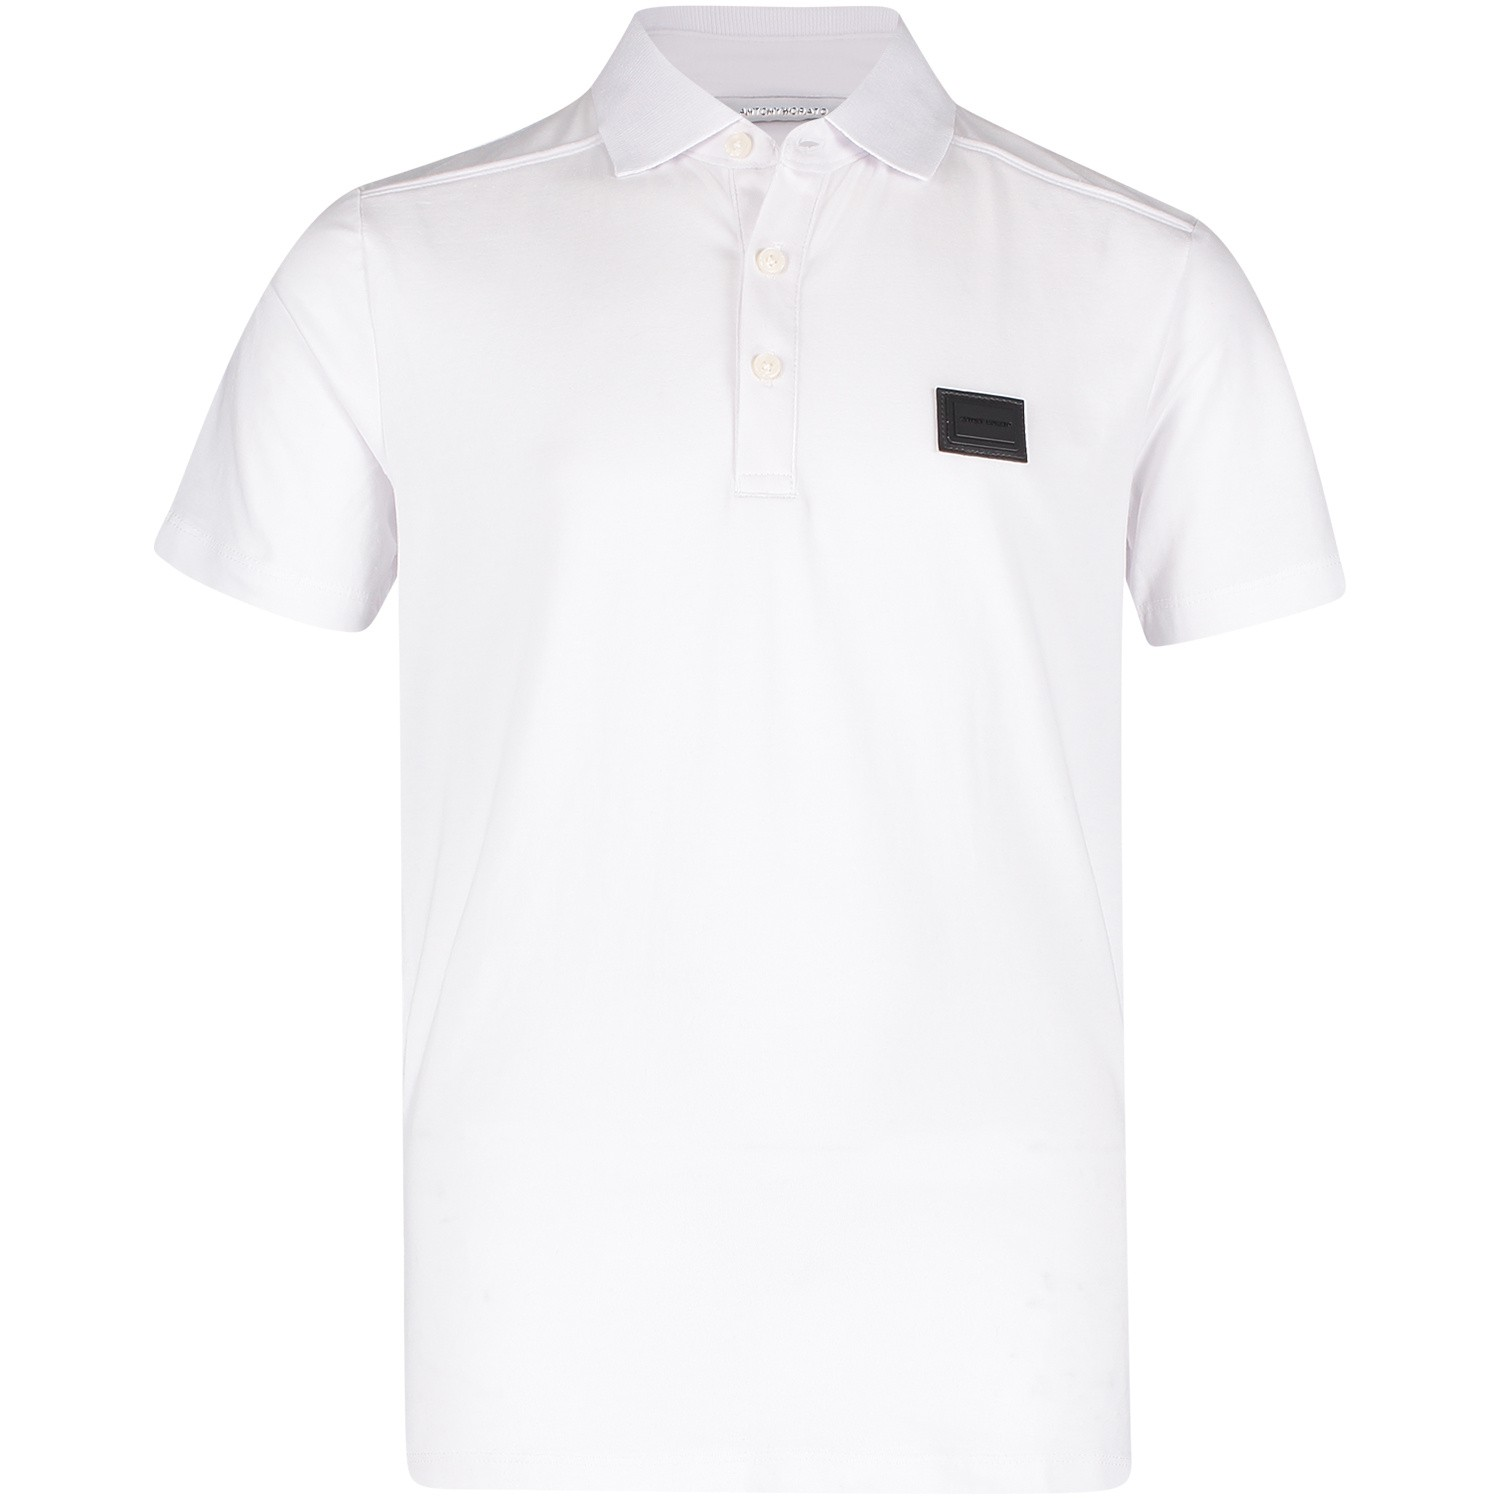 Picture of Antony Morato MKKS00381 kids polo shirt white